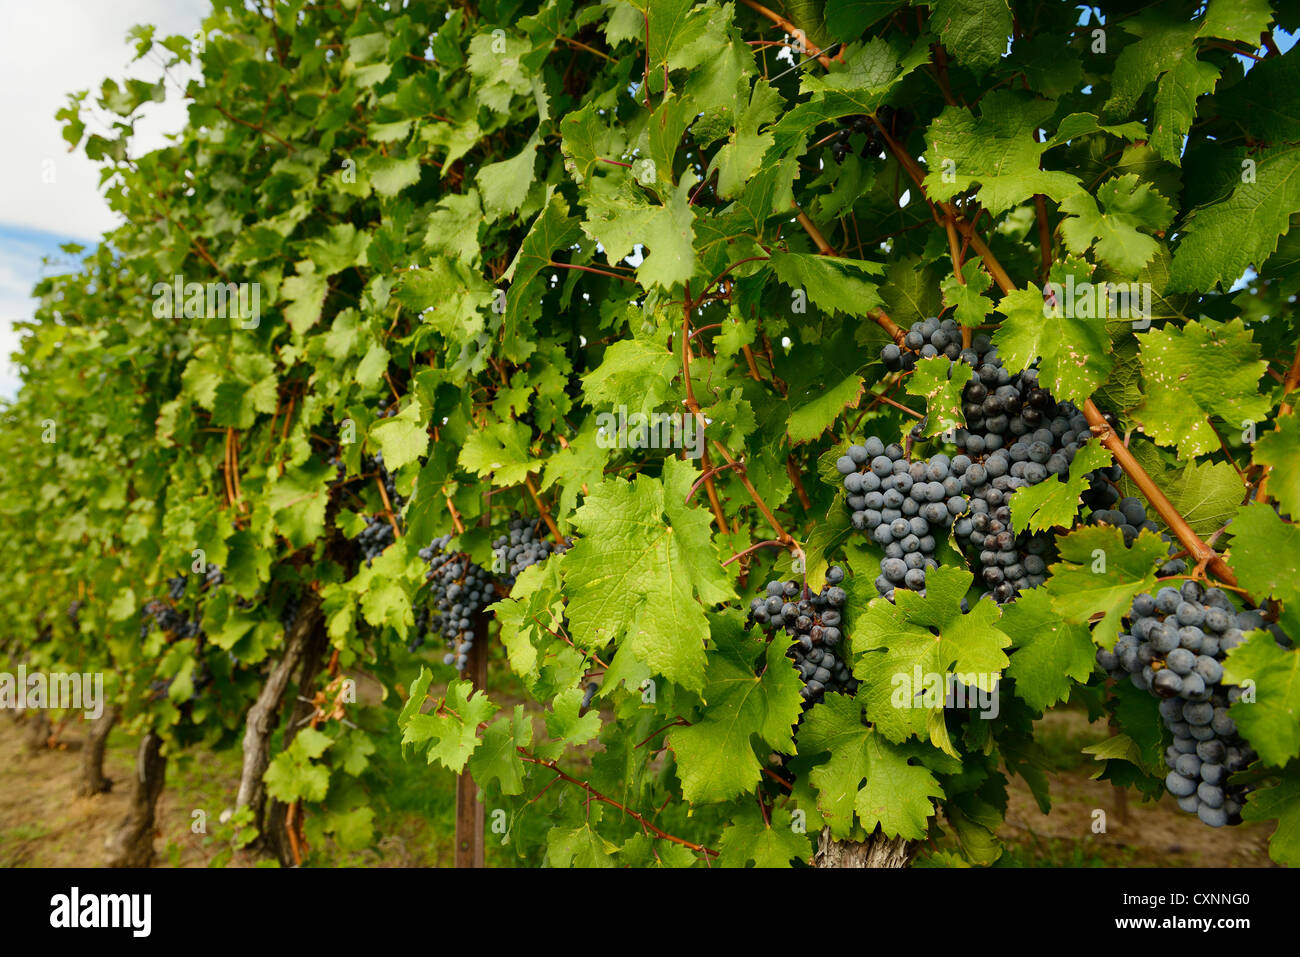 Ripe blue Merlot grapes on rows of vines in a vienyard before the Fall harvest Niagara Ontario Canada - Stock Image